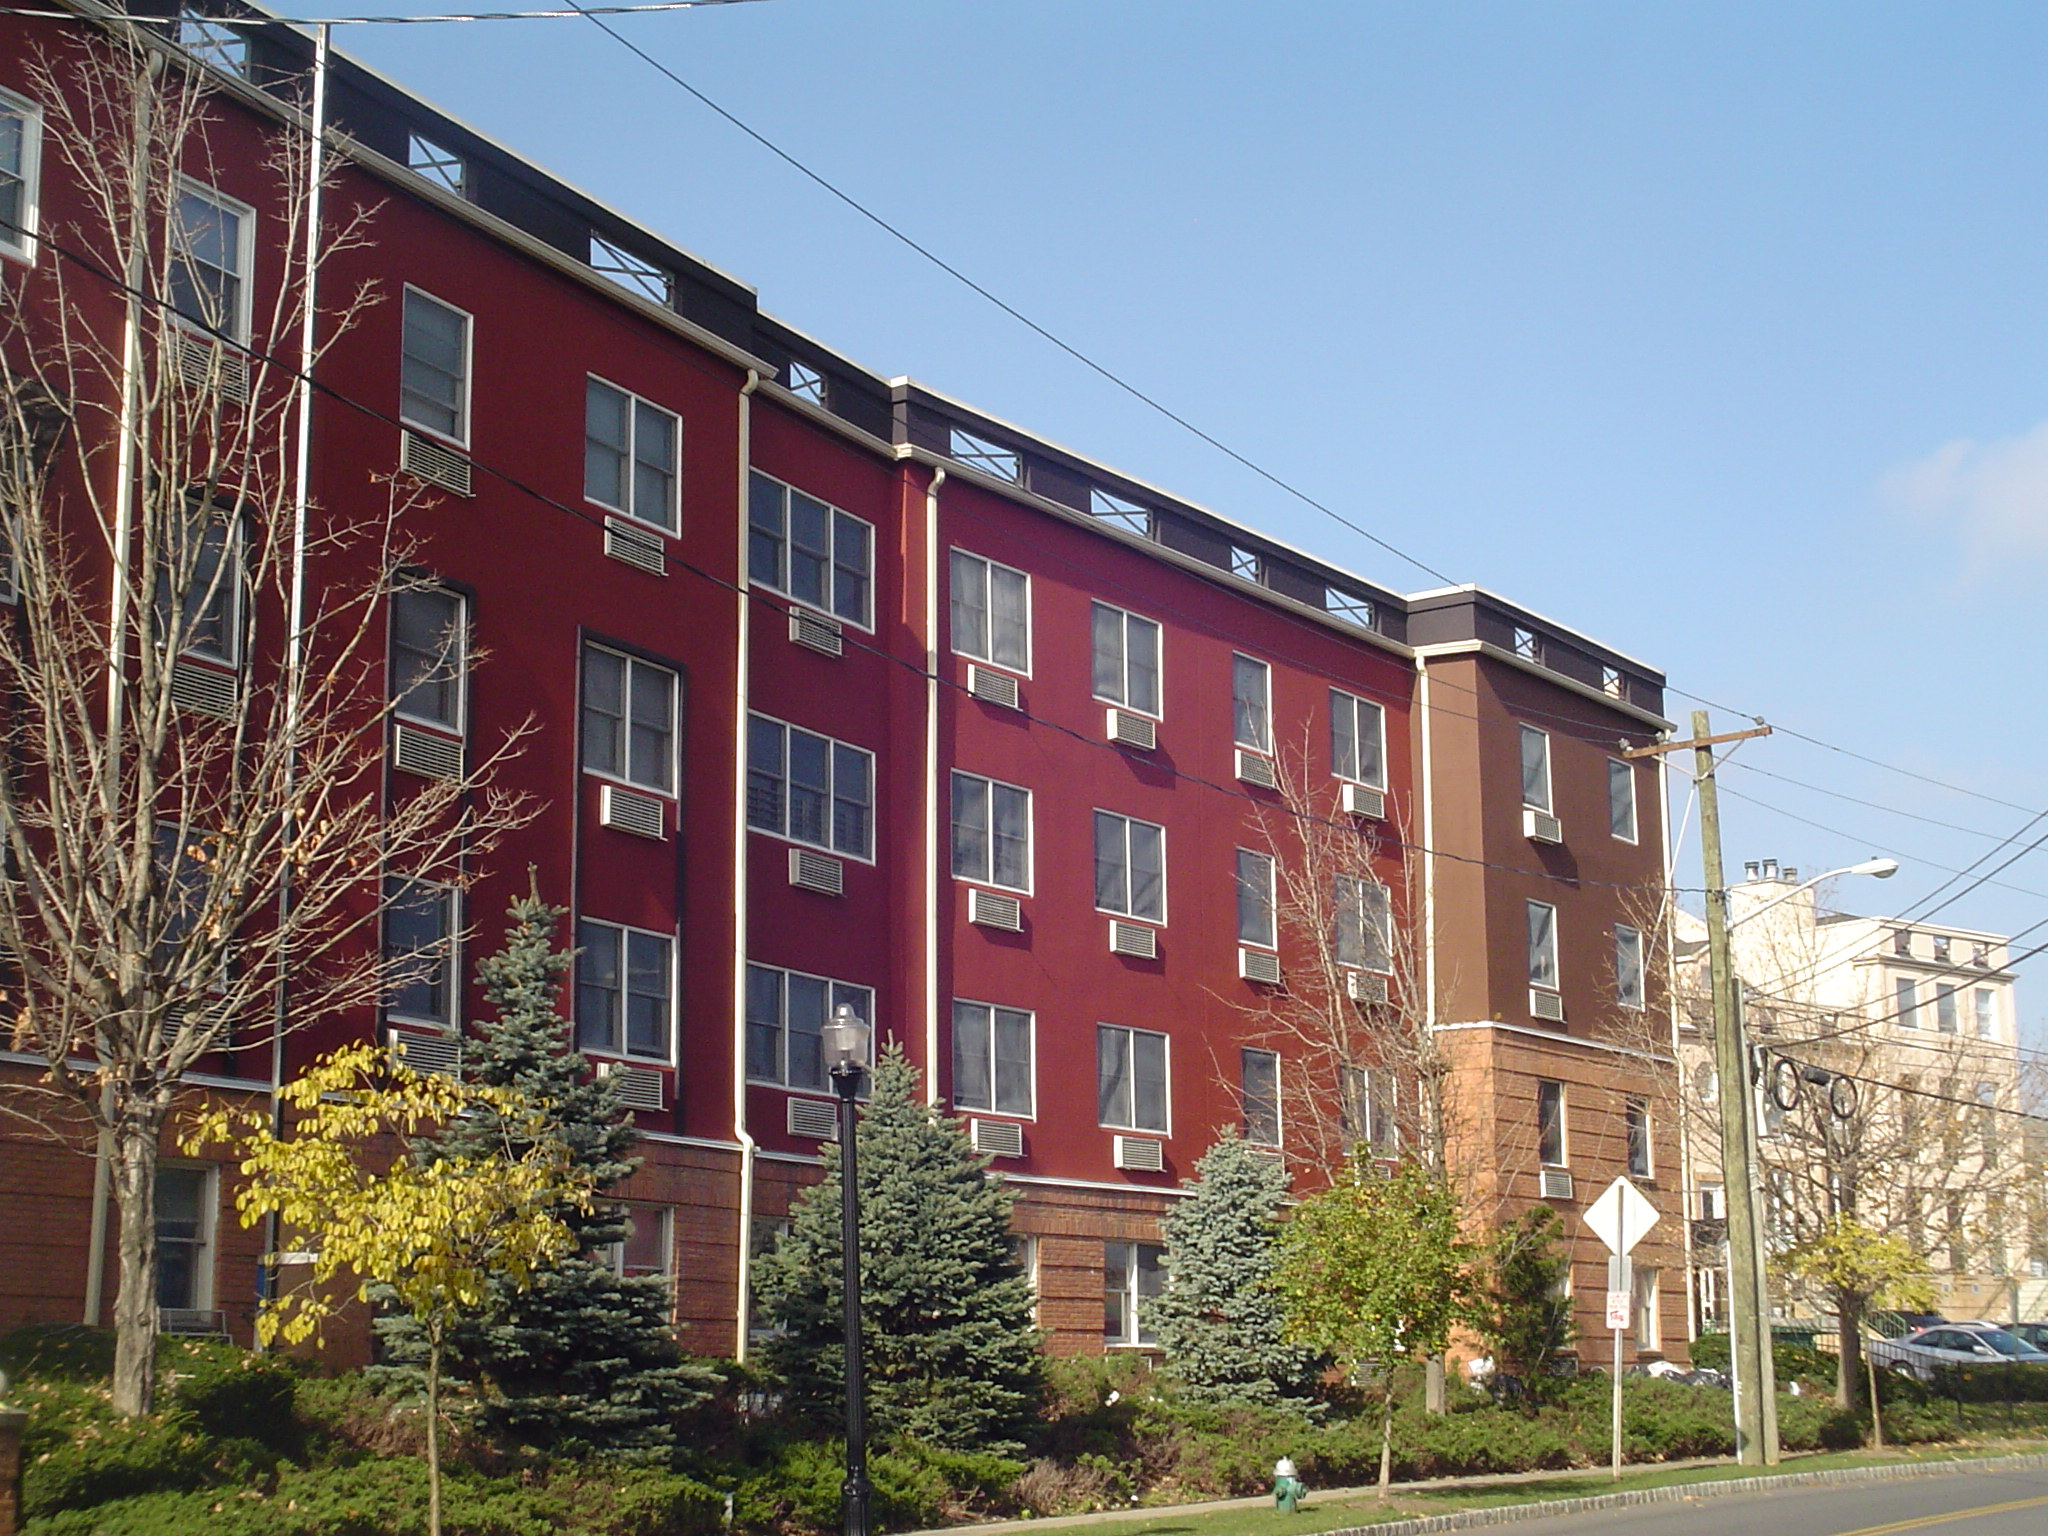 EIFS Removal and Hardcoat Stucco Replacement - Apt Bldg in Essex County